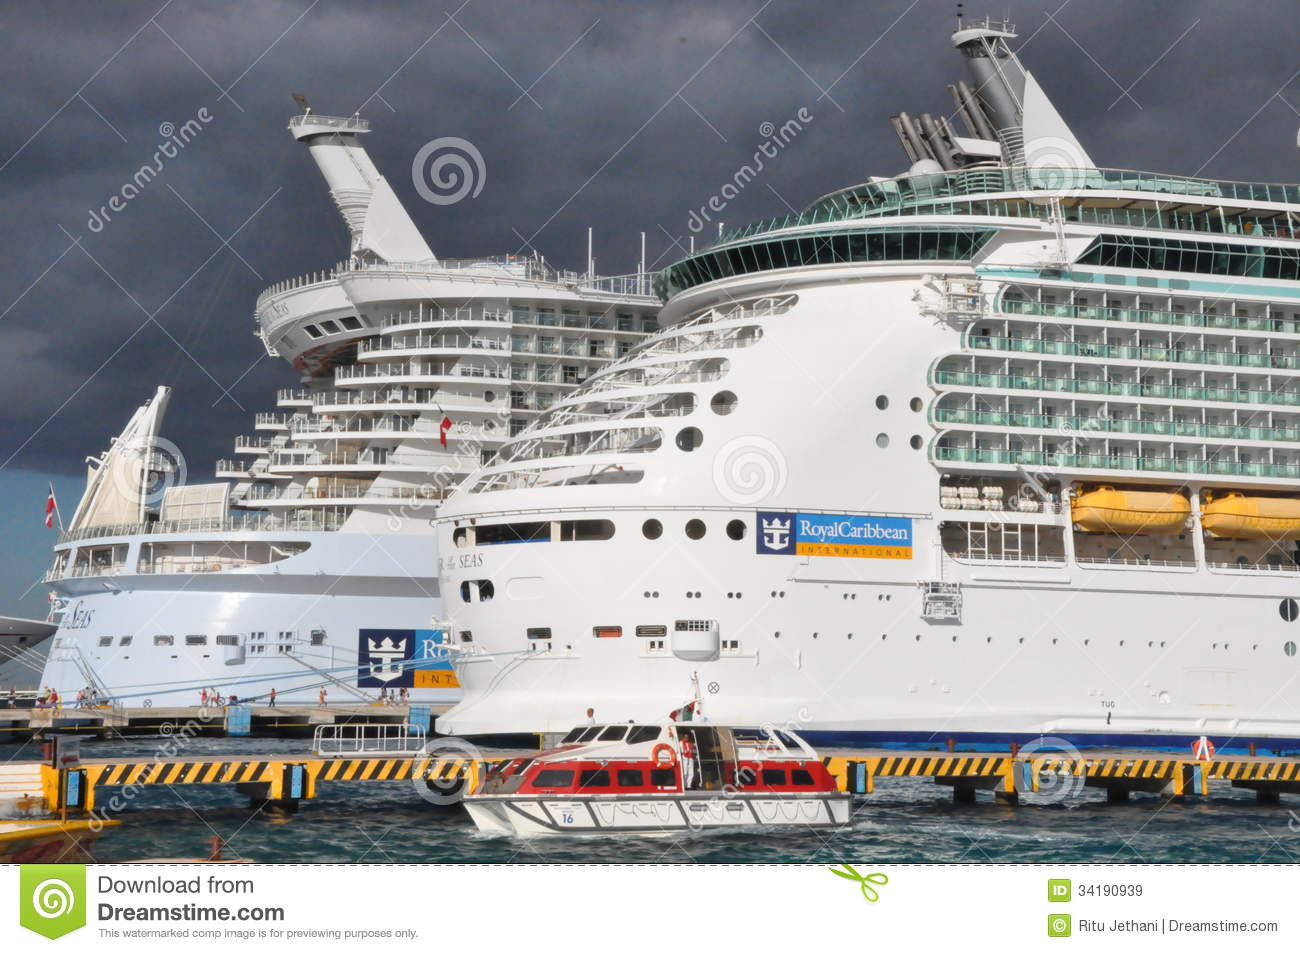 Royal Caribbean's Allure Of The Seas & Mariner Of The Seas.